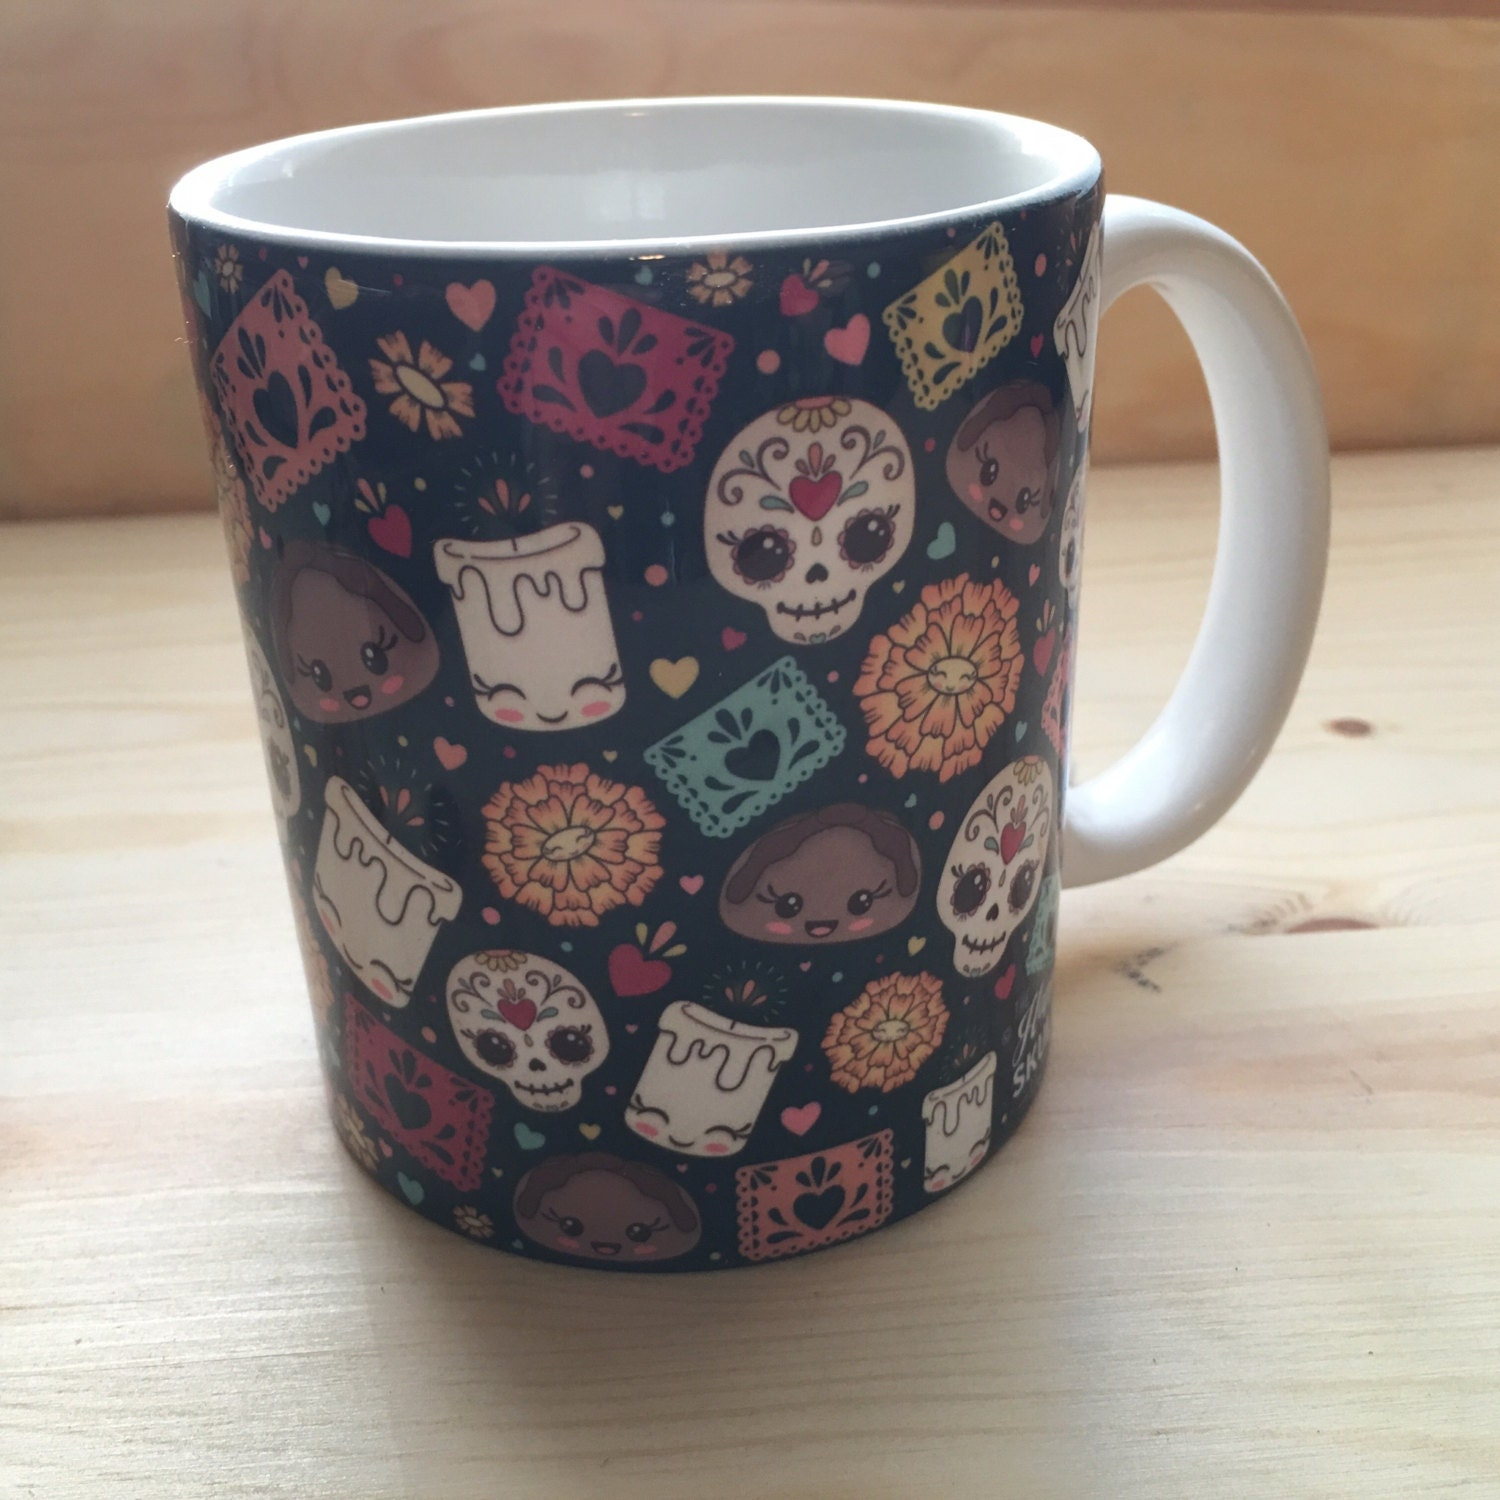 Day of the dead mug for Dulce coffee studio